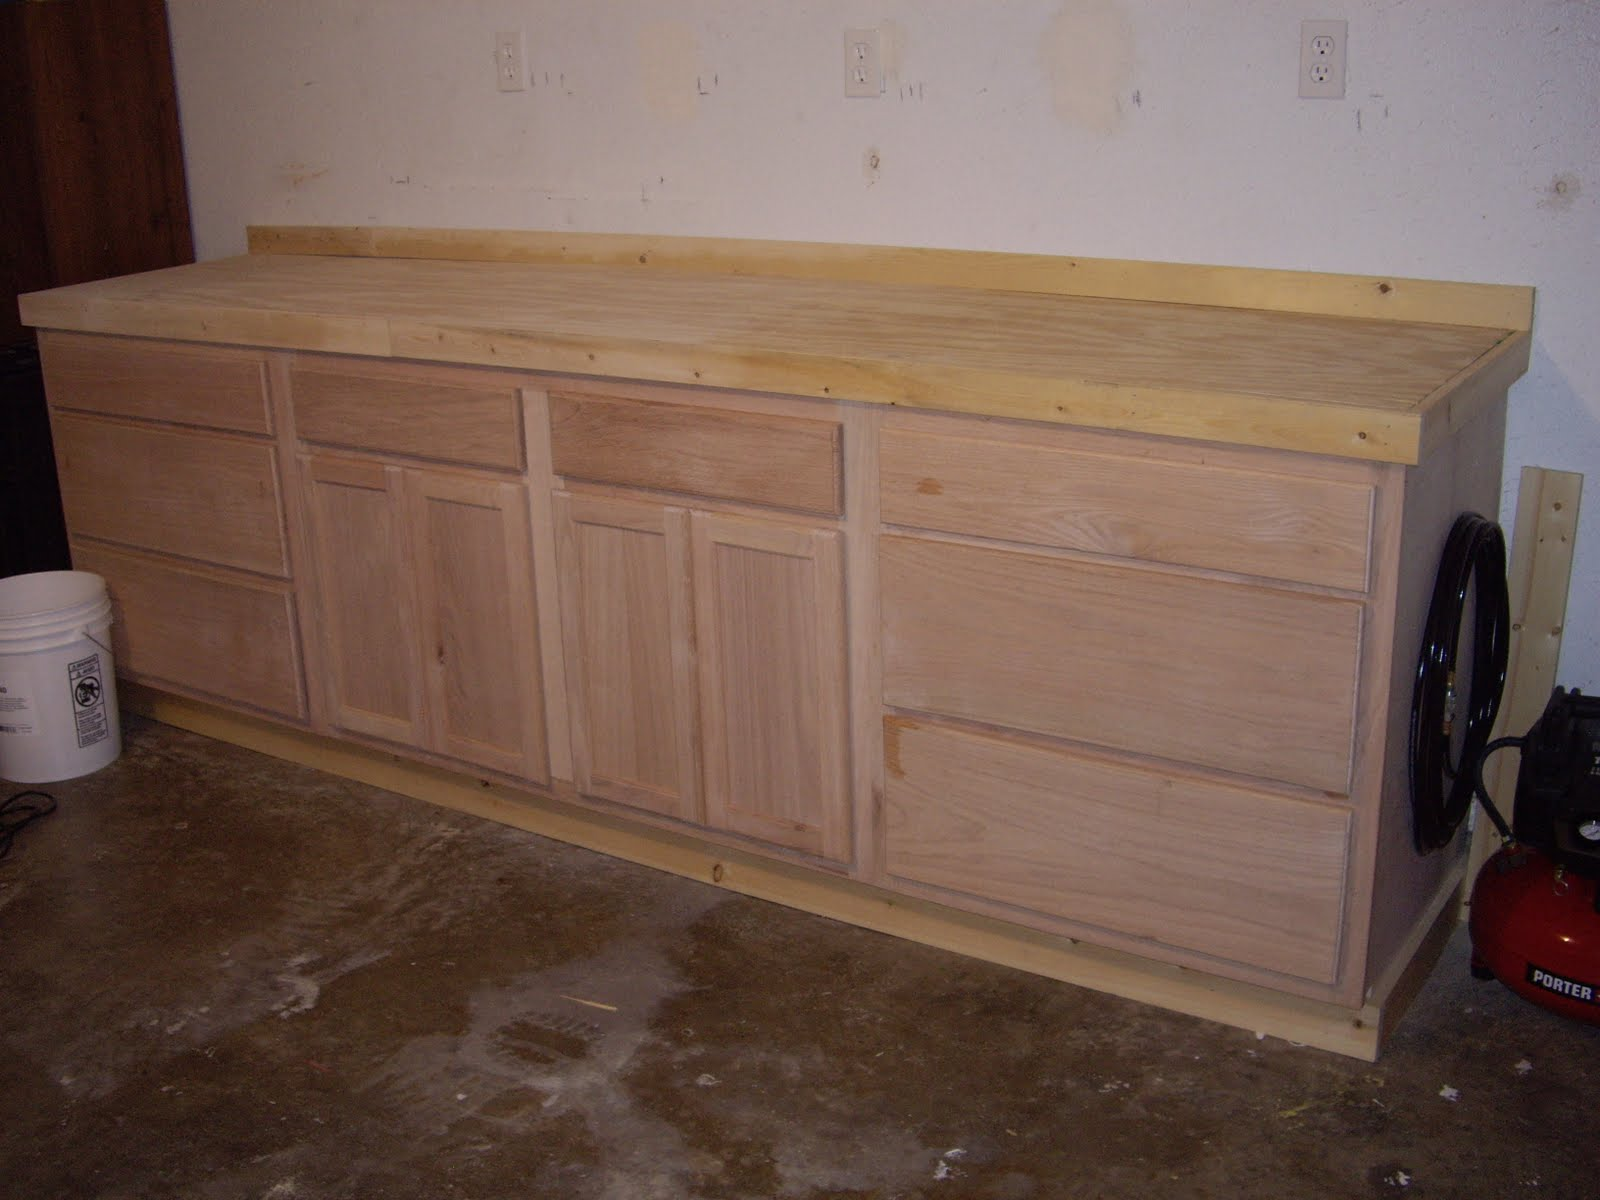 Best woodworking plans website plans to making how to for Plywood cupboard